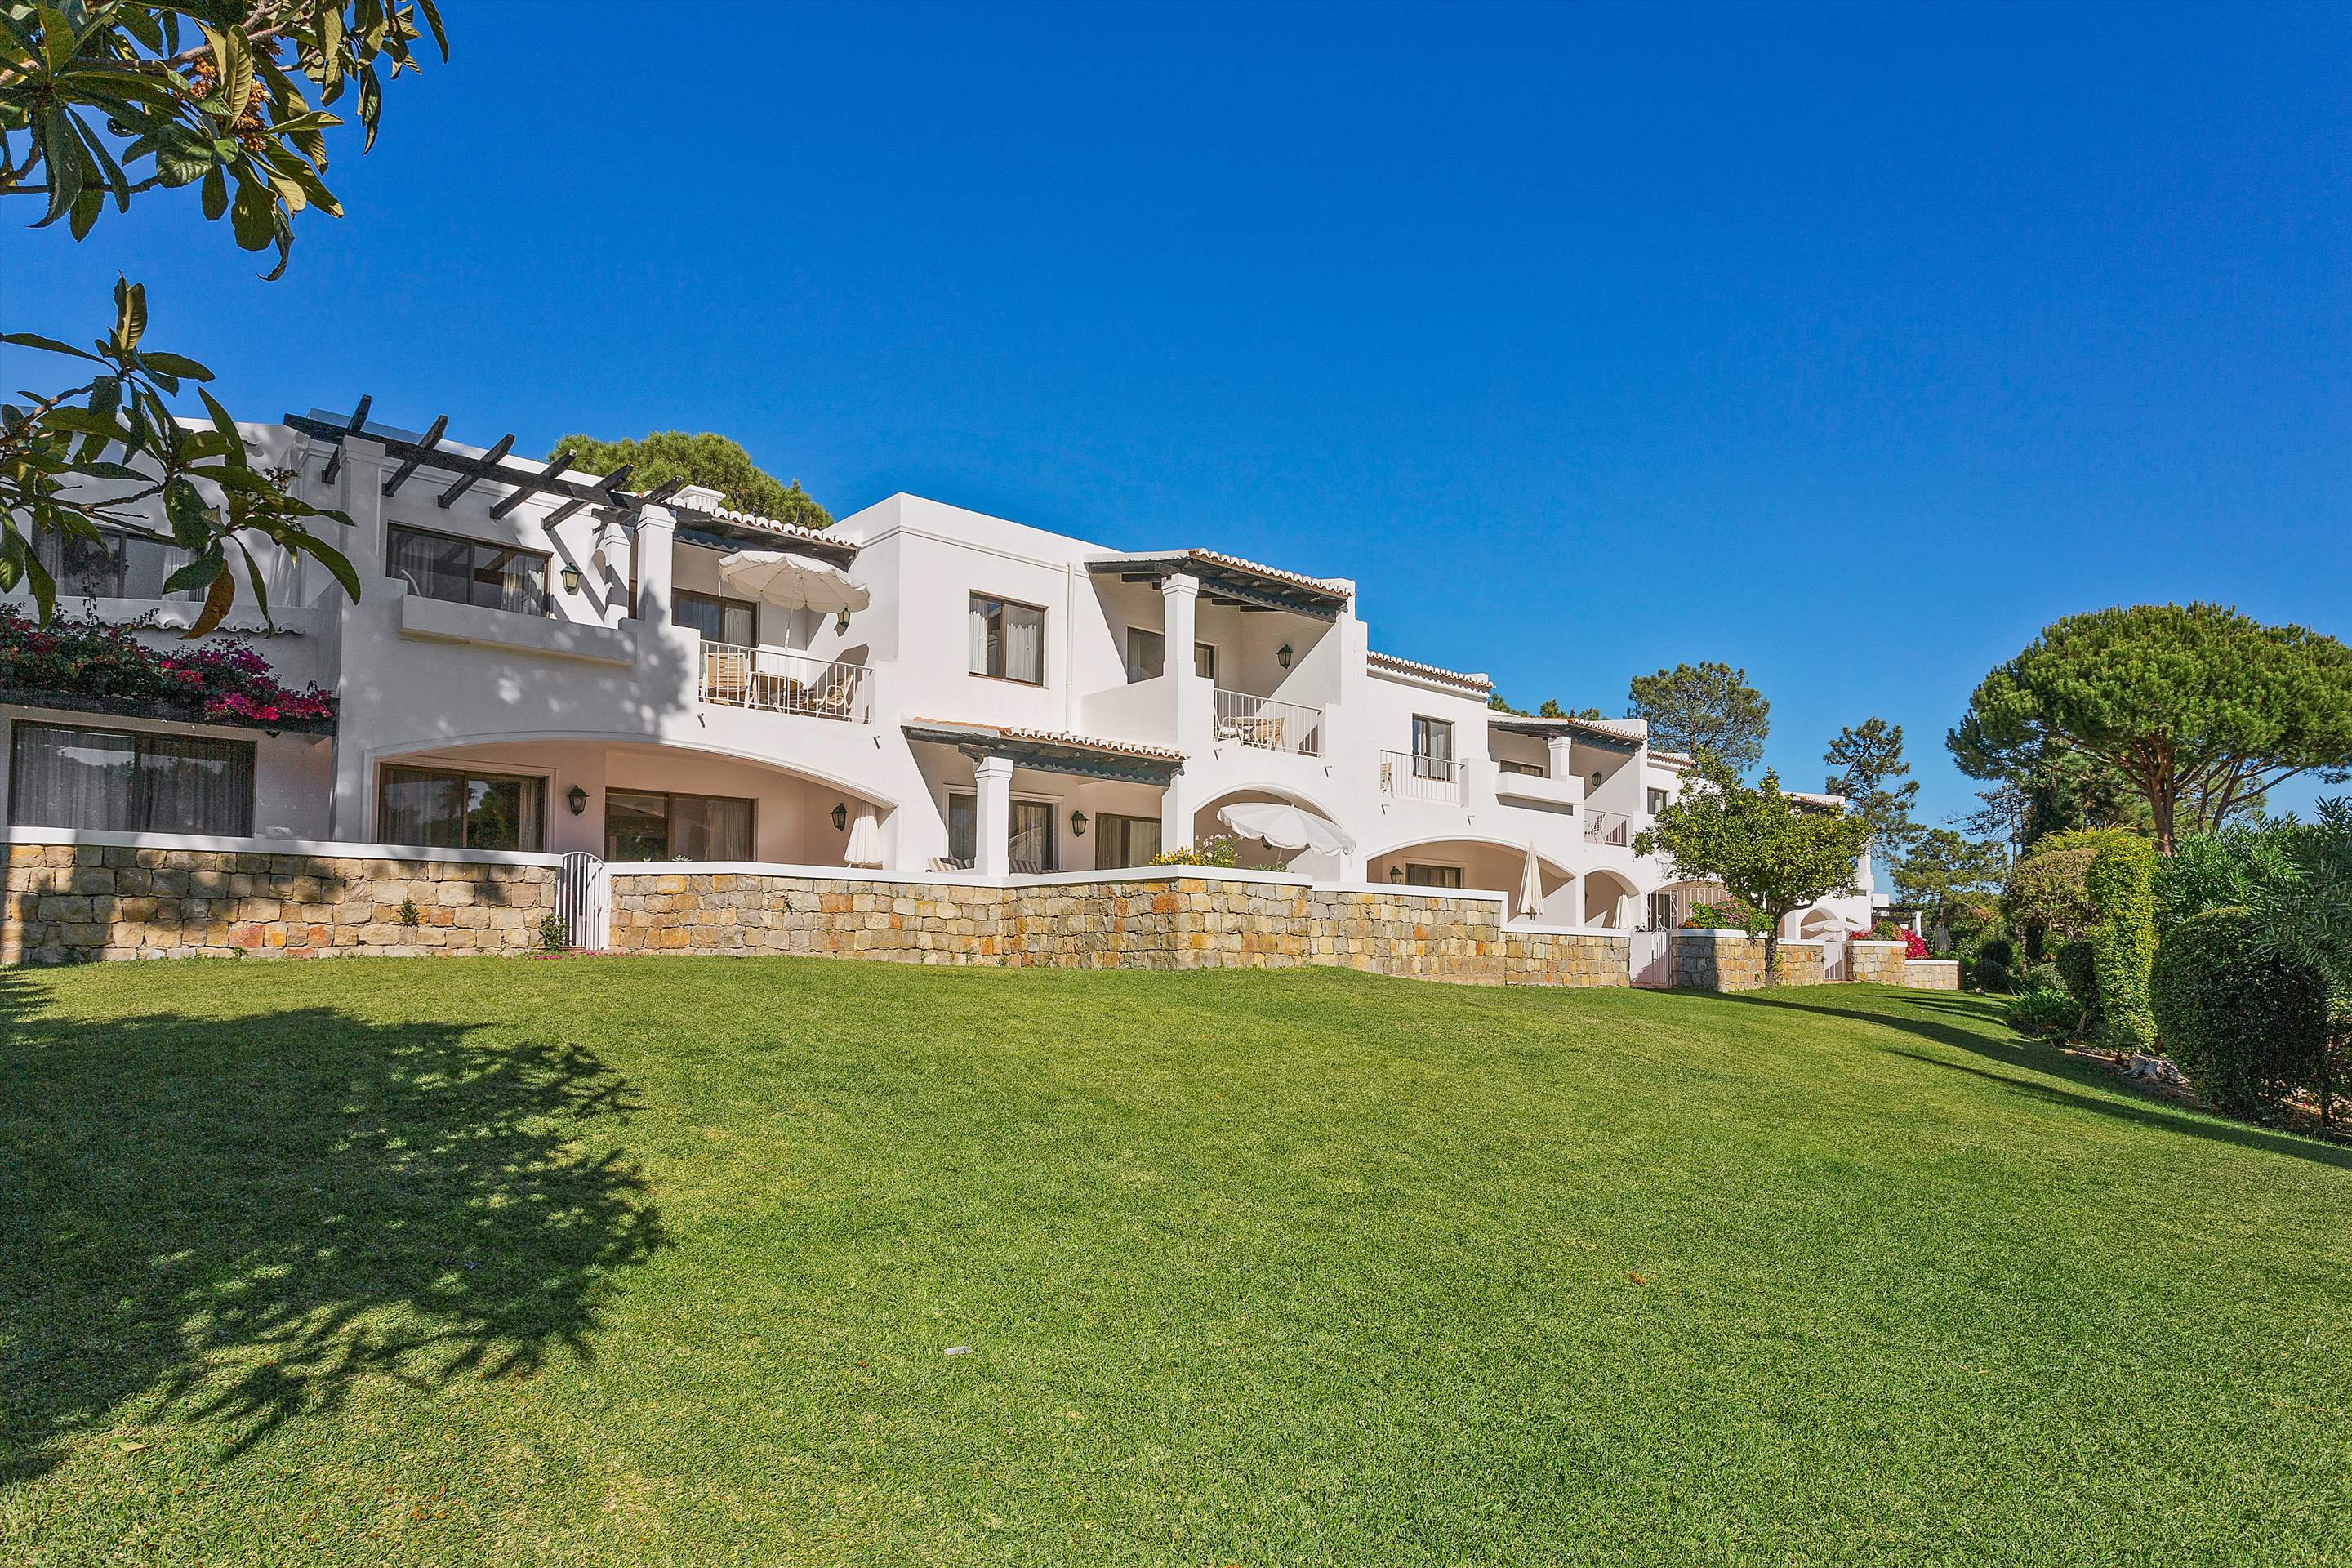 Four Seasons Country Club 2 bed, Superior - Sunday Arrival, 2 bedroom apartment in Four Seasons Country Club, Algarve Photo #1